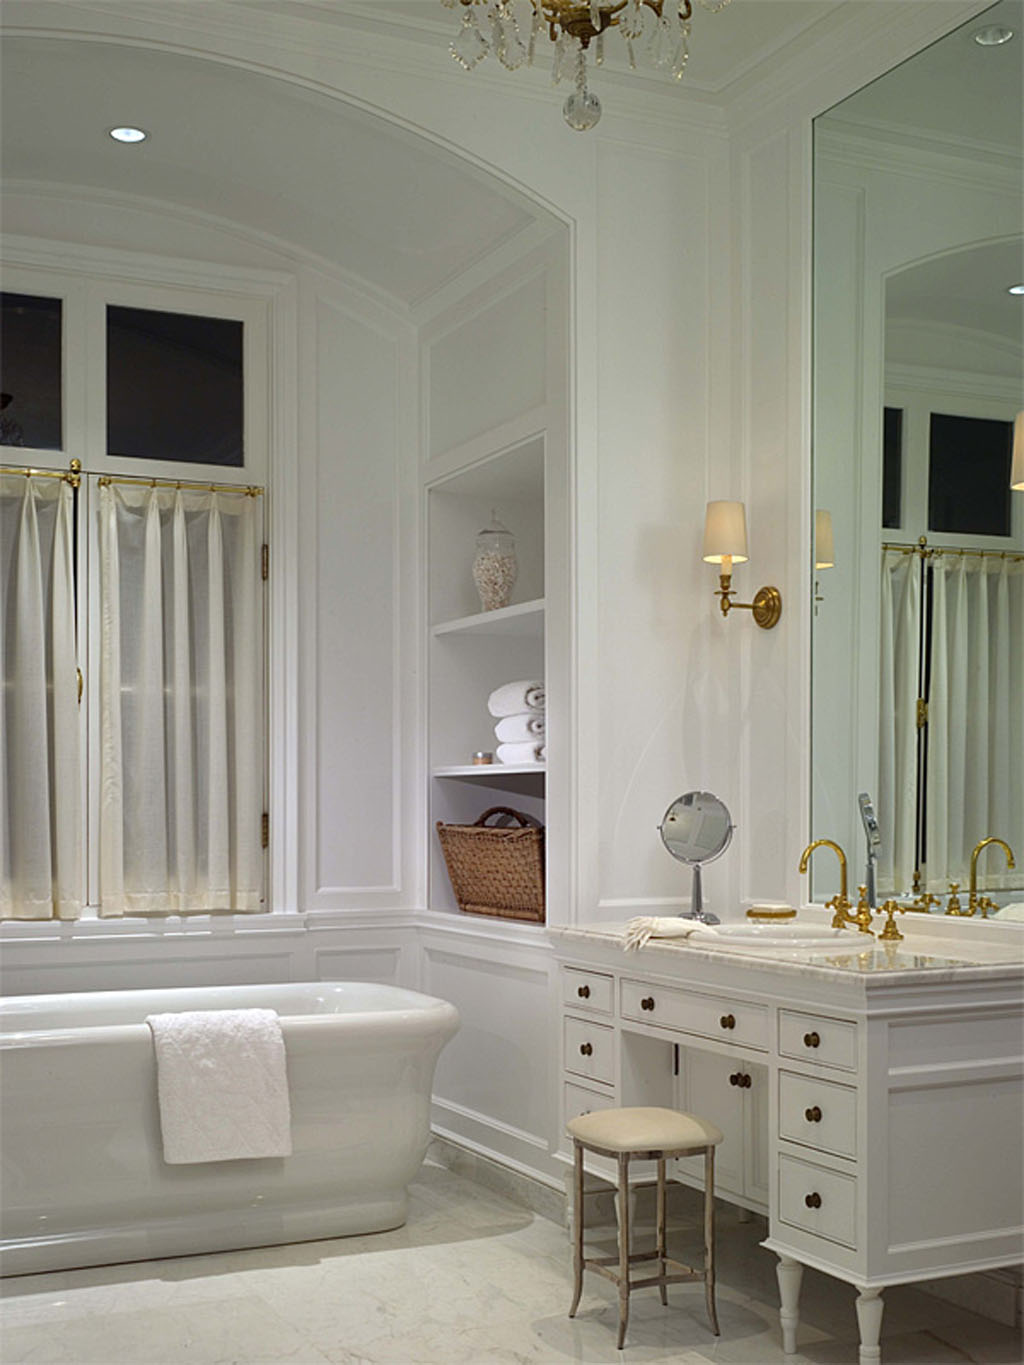 Classic Style Bathroom Design photo - 1